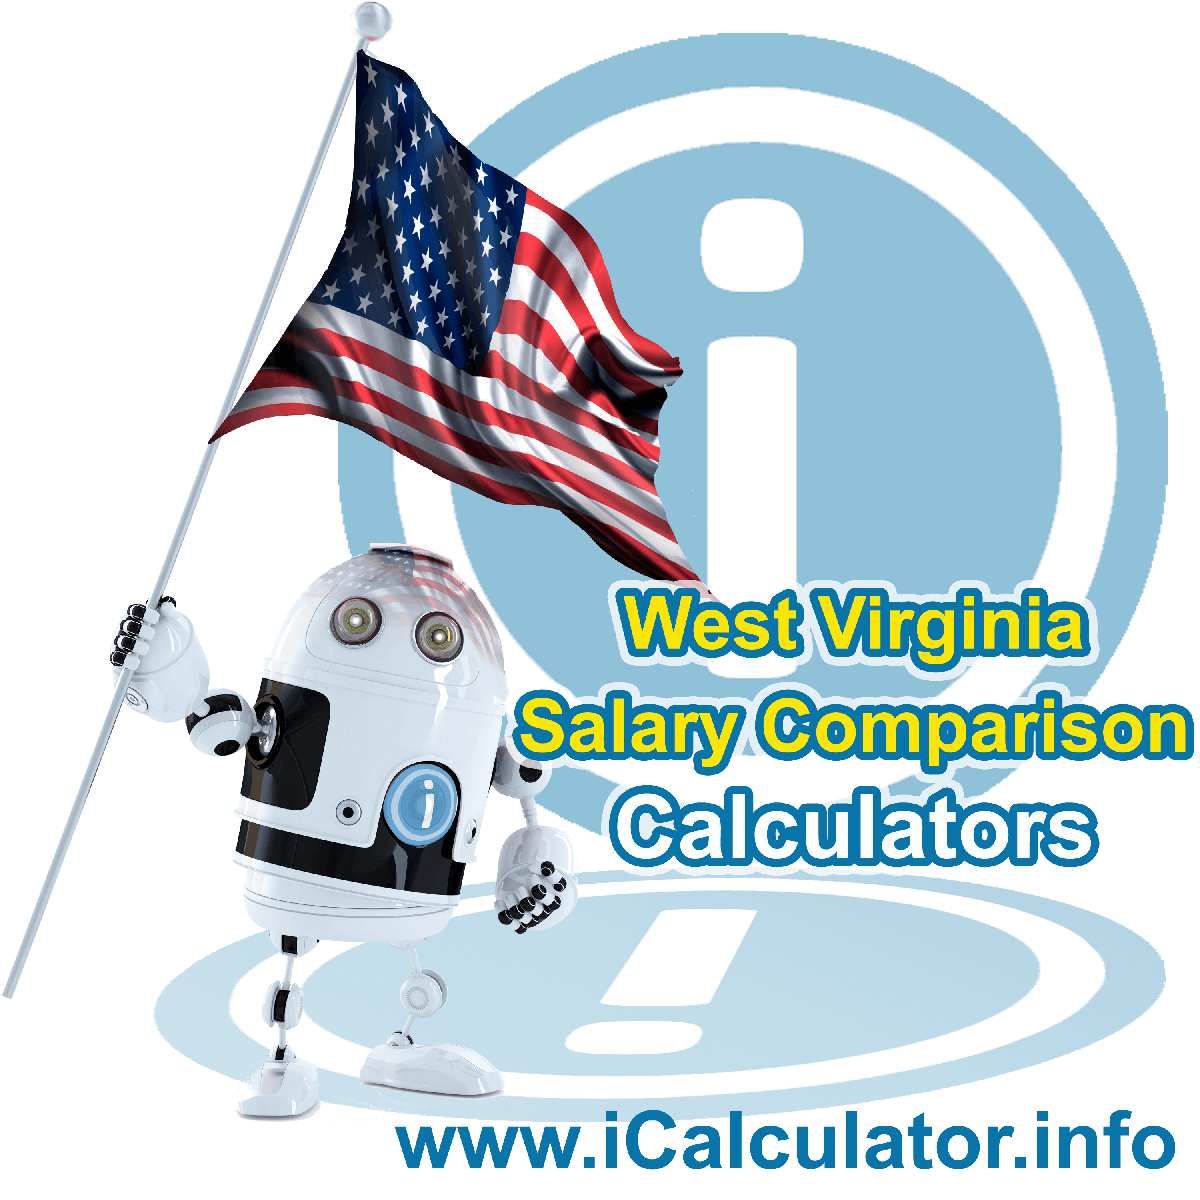 West Virginia Salary Comparison Calculator 2021 | iCalculator™ | The West Virginia Salary Comparison Calculator allows you to quickly calculate and compare upto 6 salaries in West Virginia or between other states for the 2021 tax year and historical tax years. Its an excellent tool for jobseekers, pay raise comparison and comparison of salaries between different US States